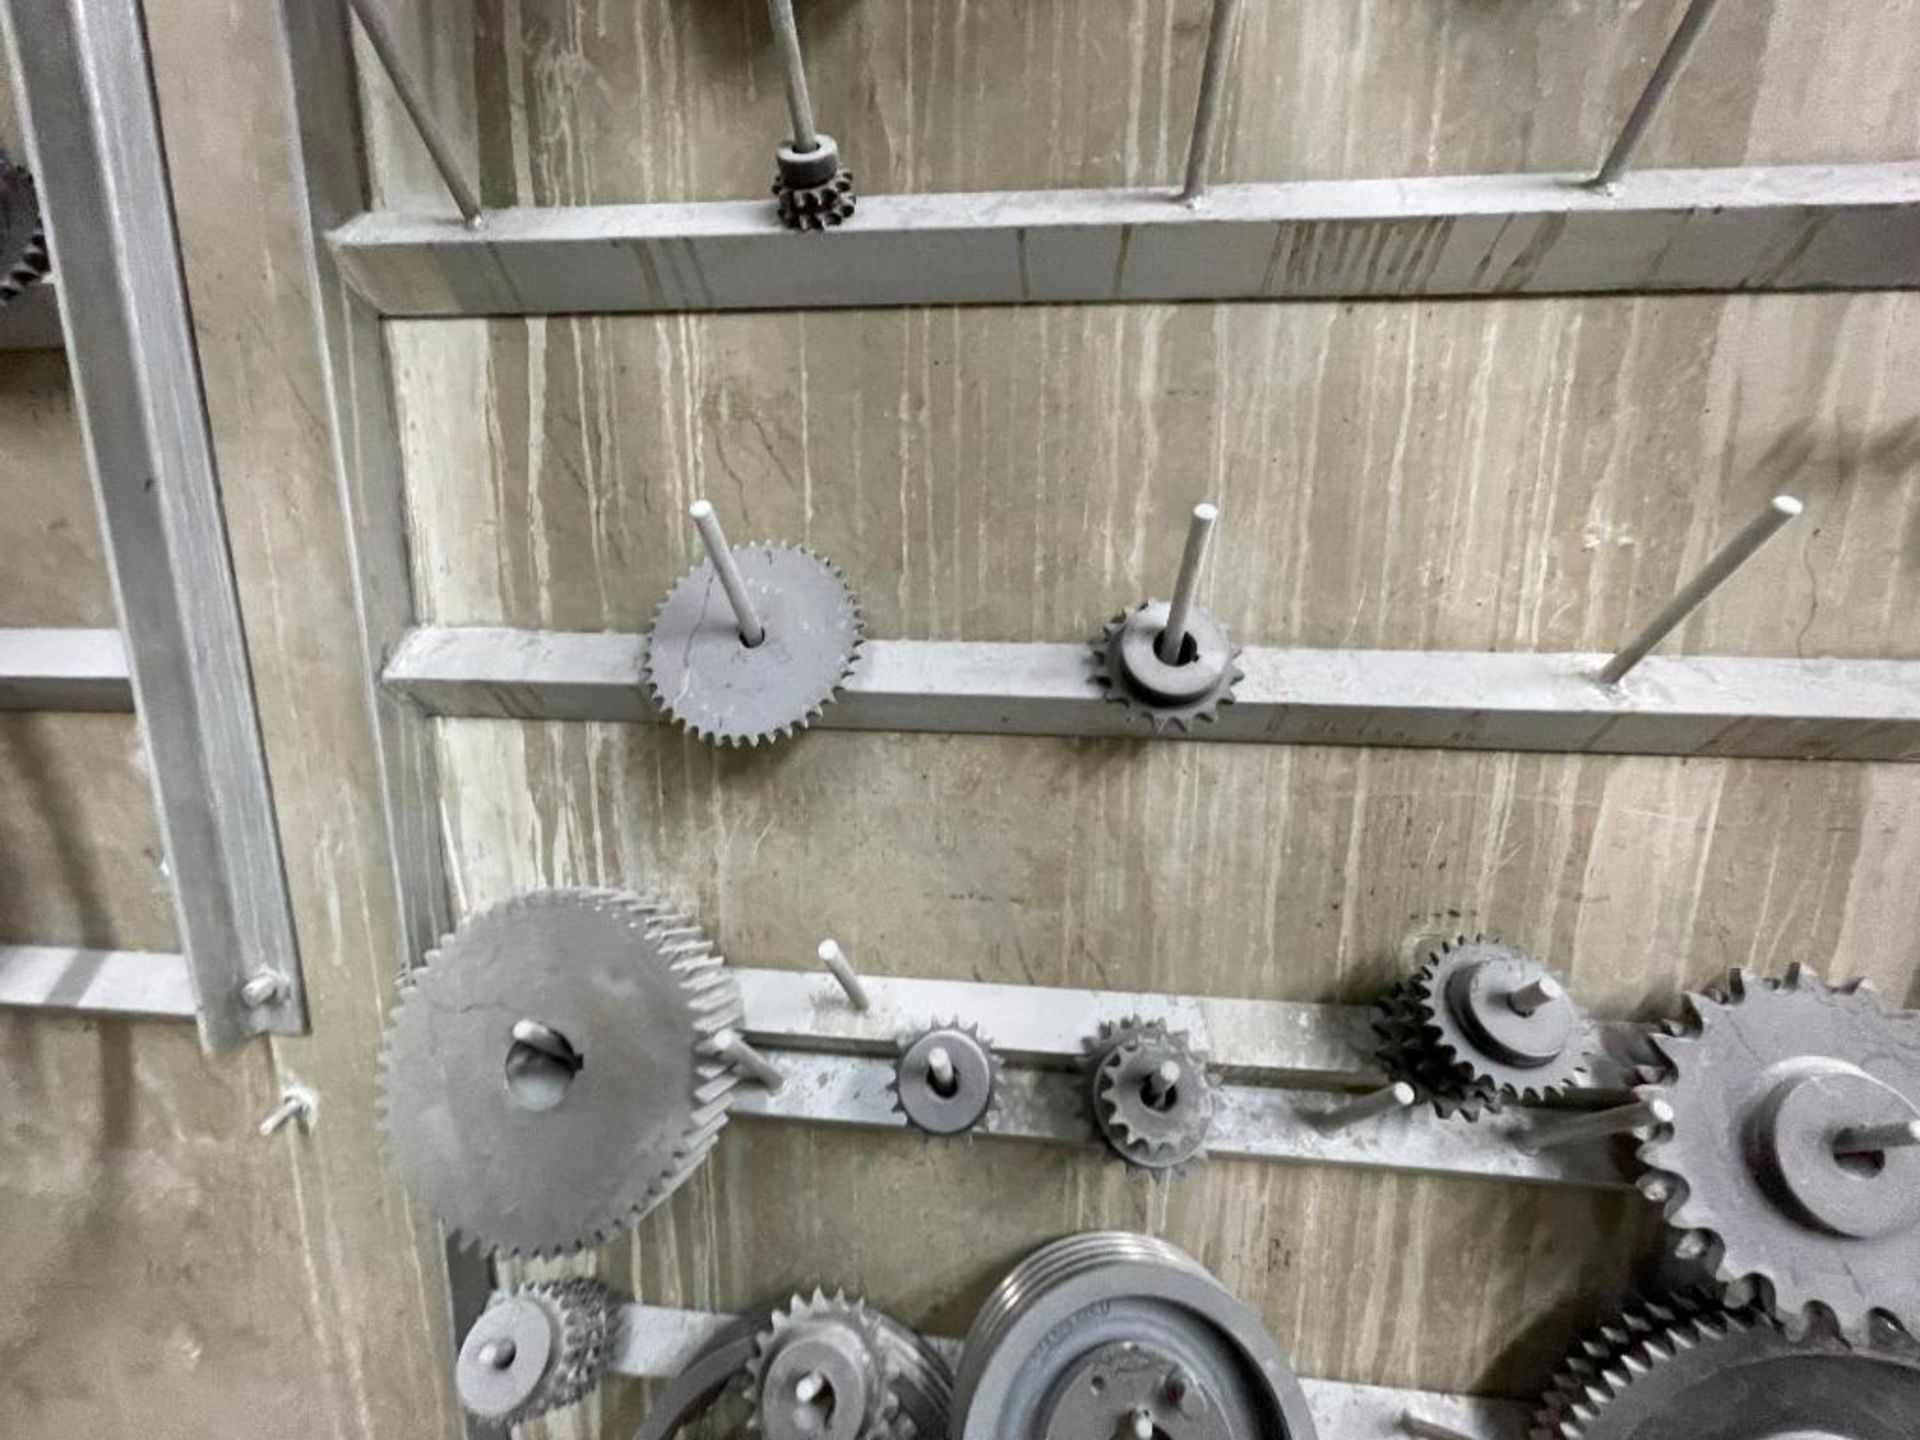 gears and pulleys - Image 12 of 17